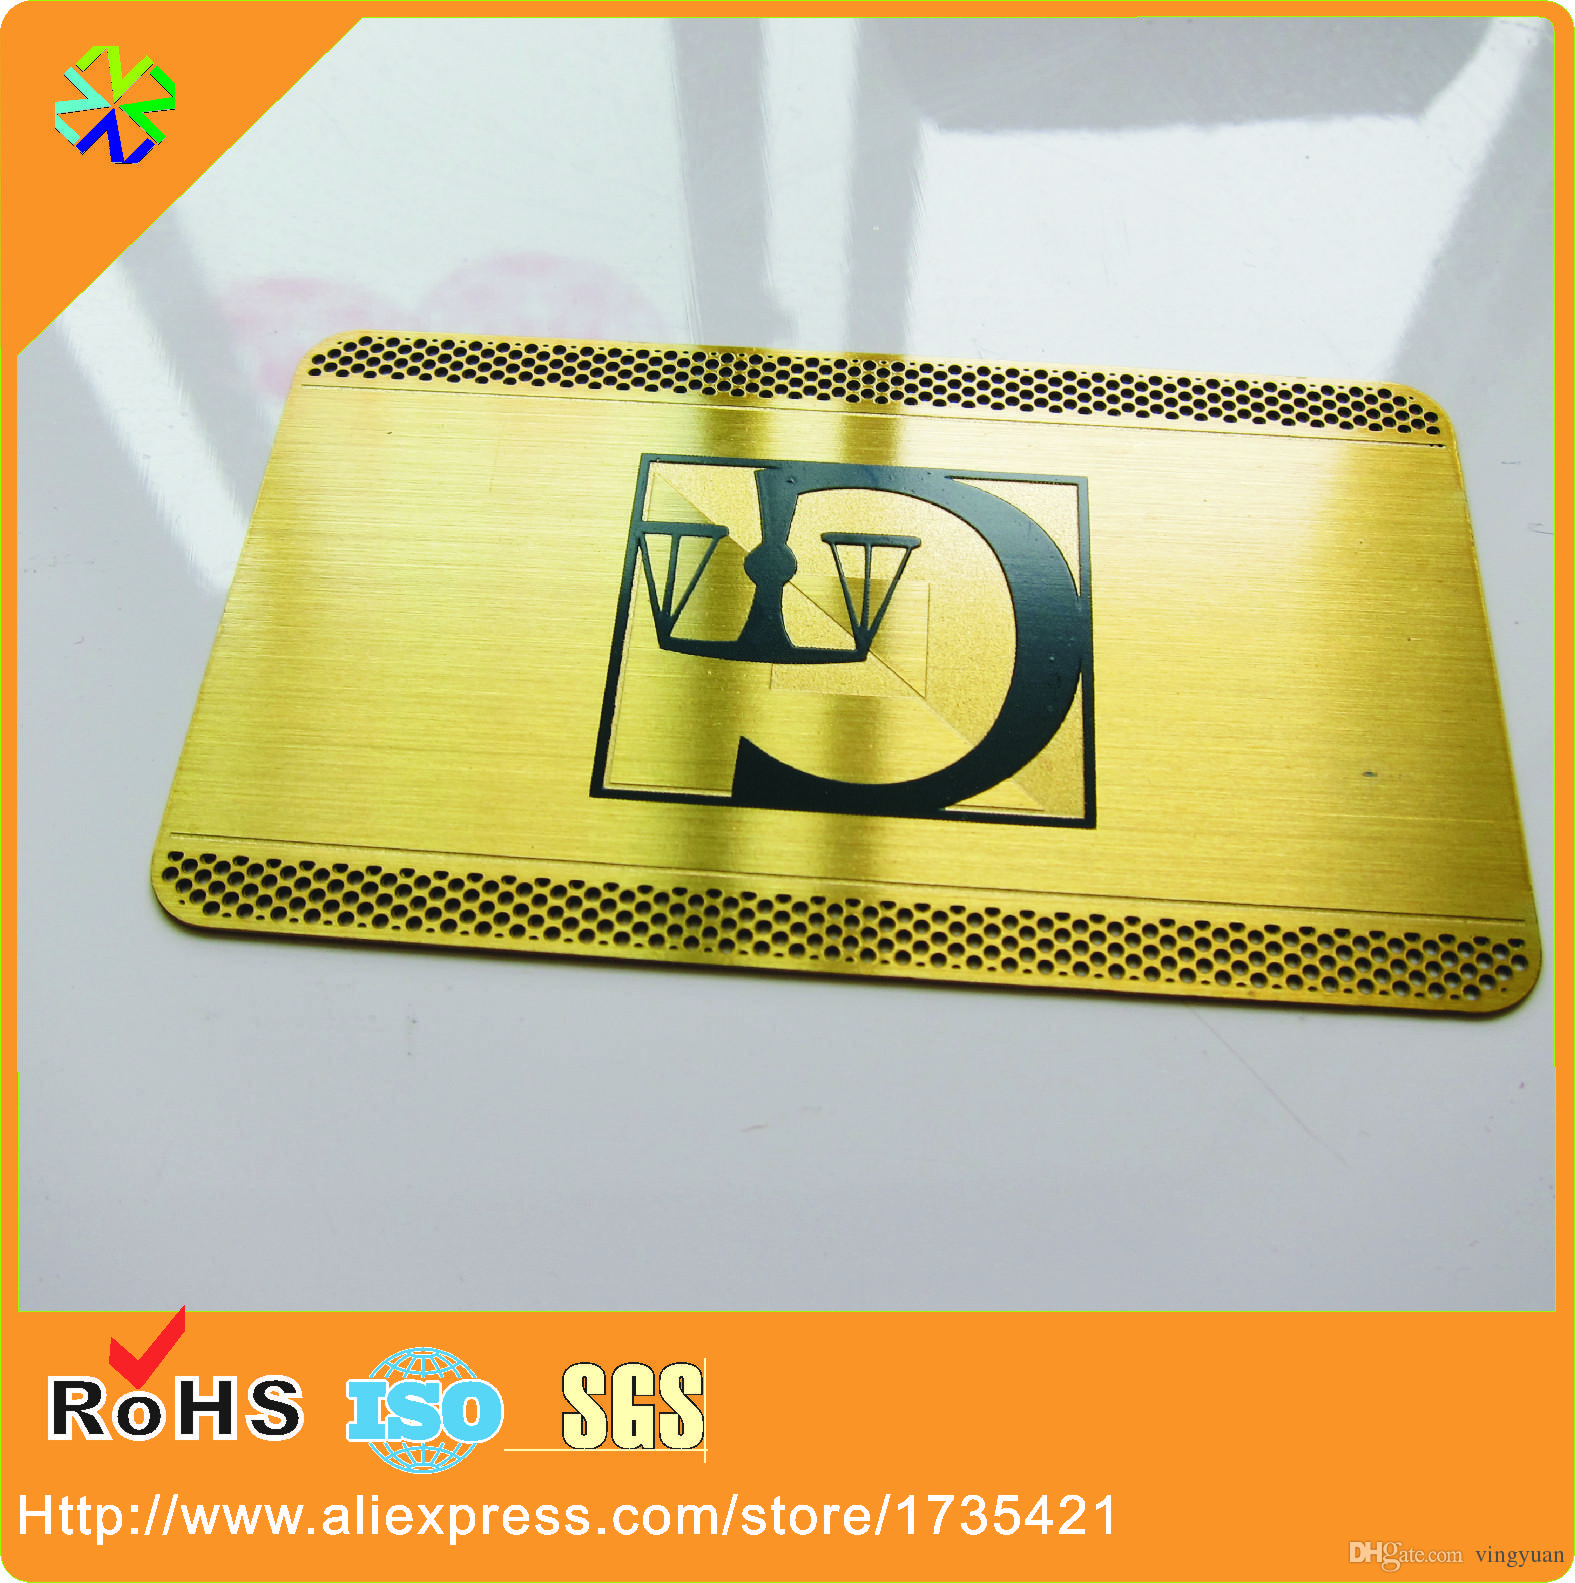 b products plated hb g gold best ring accessories quality